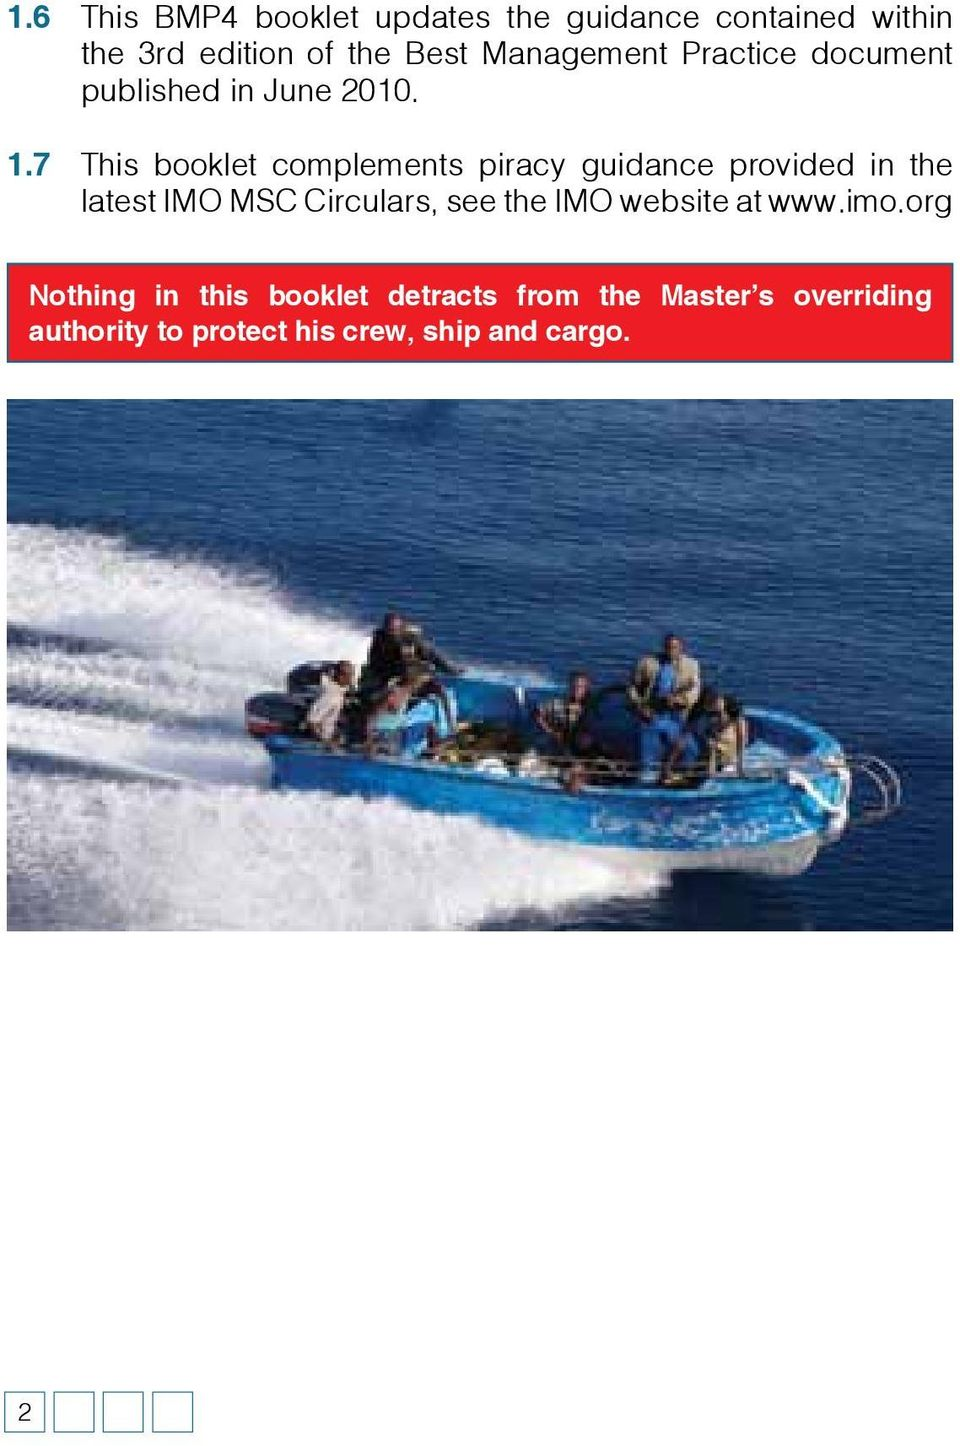 7 This booklet complements piracy guidance provided in the latest IMO MSC Circulars, see the